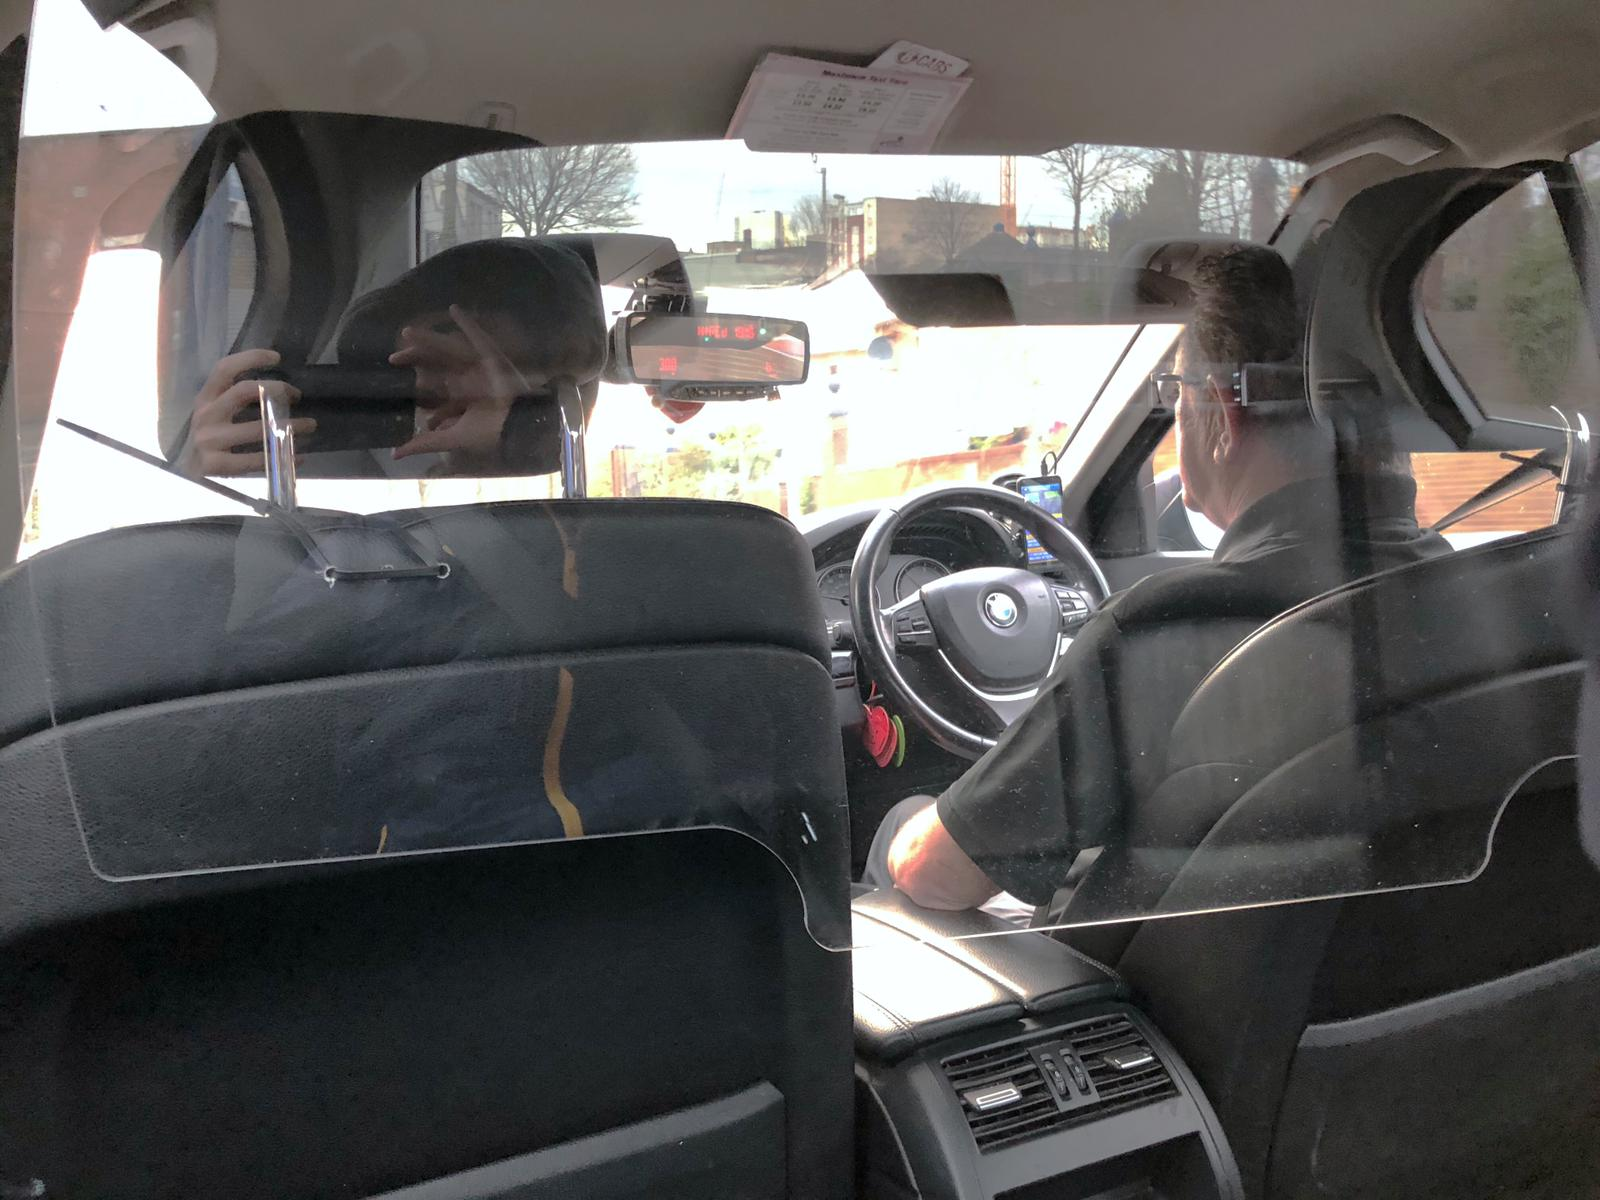 THE NEW NORMAL: A private taxi in North Belfast with a newly-installed protective screen between driver and passengers